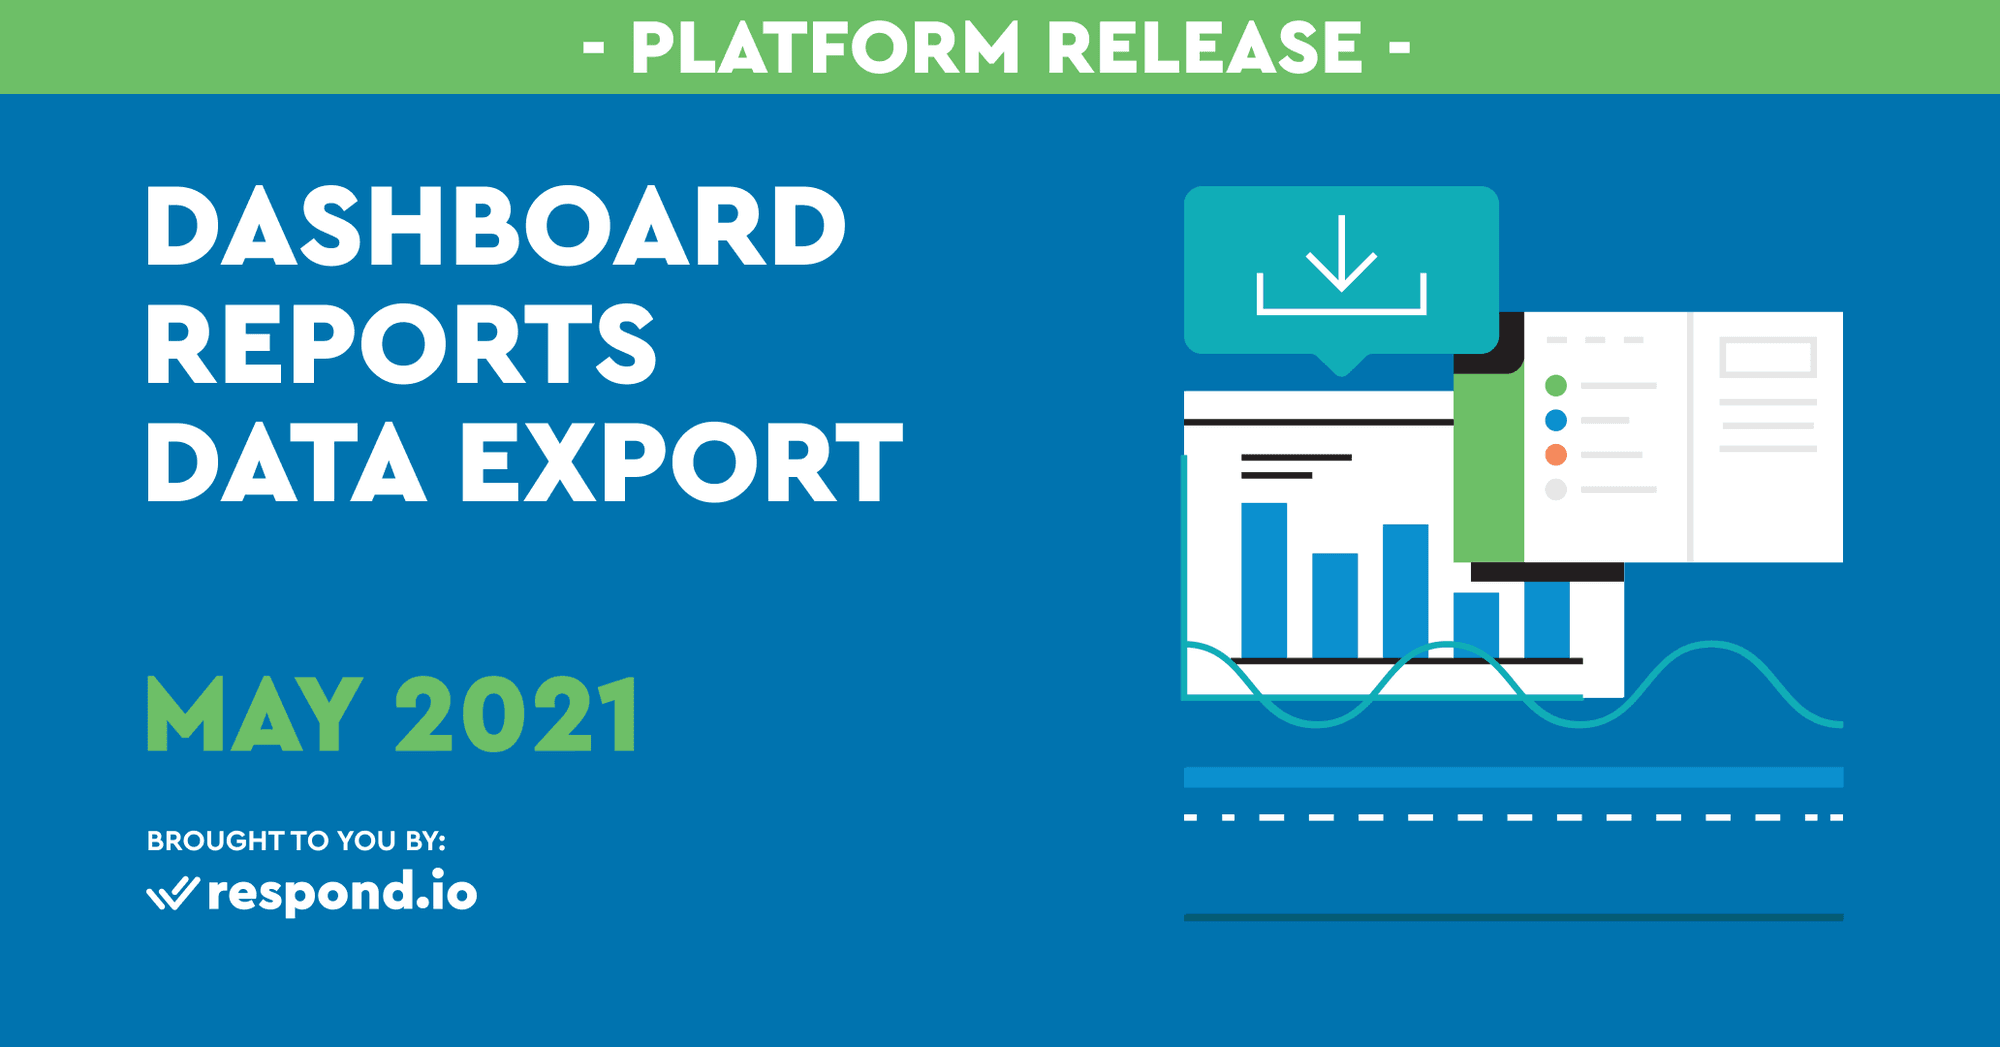 The May 2021 Release: New Dashboard, Reports & Data Export